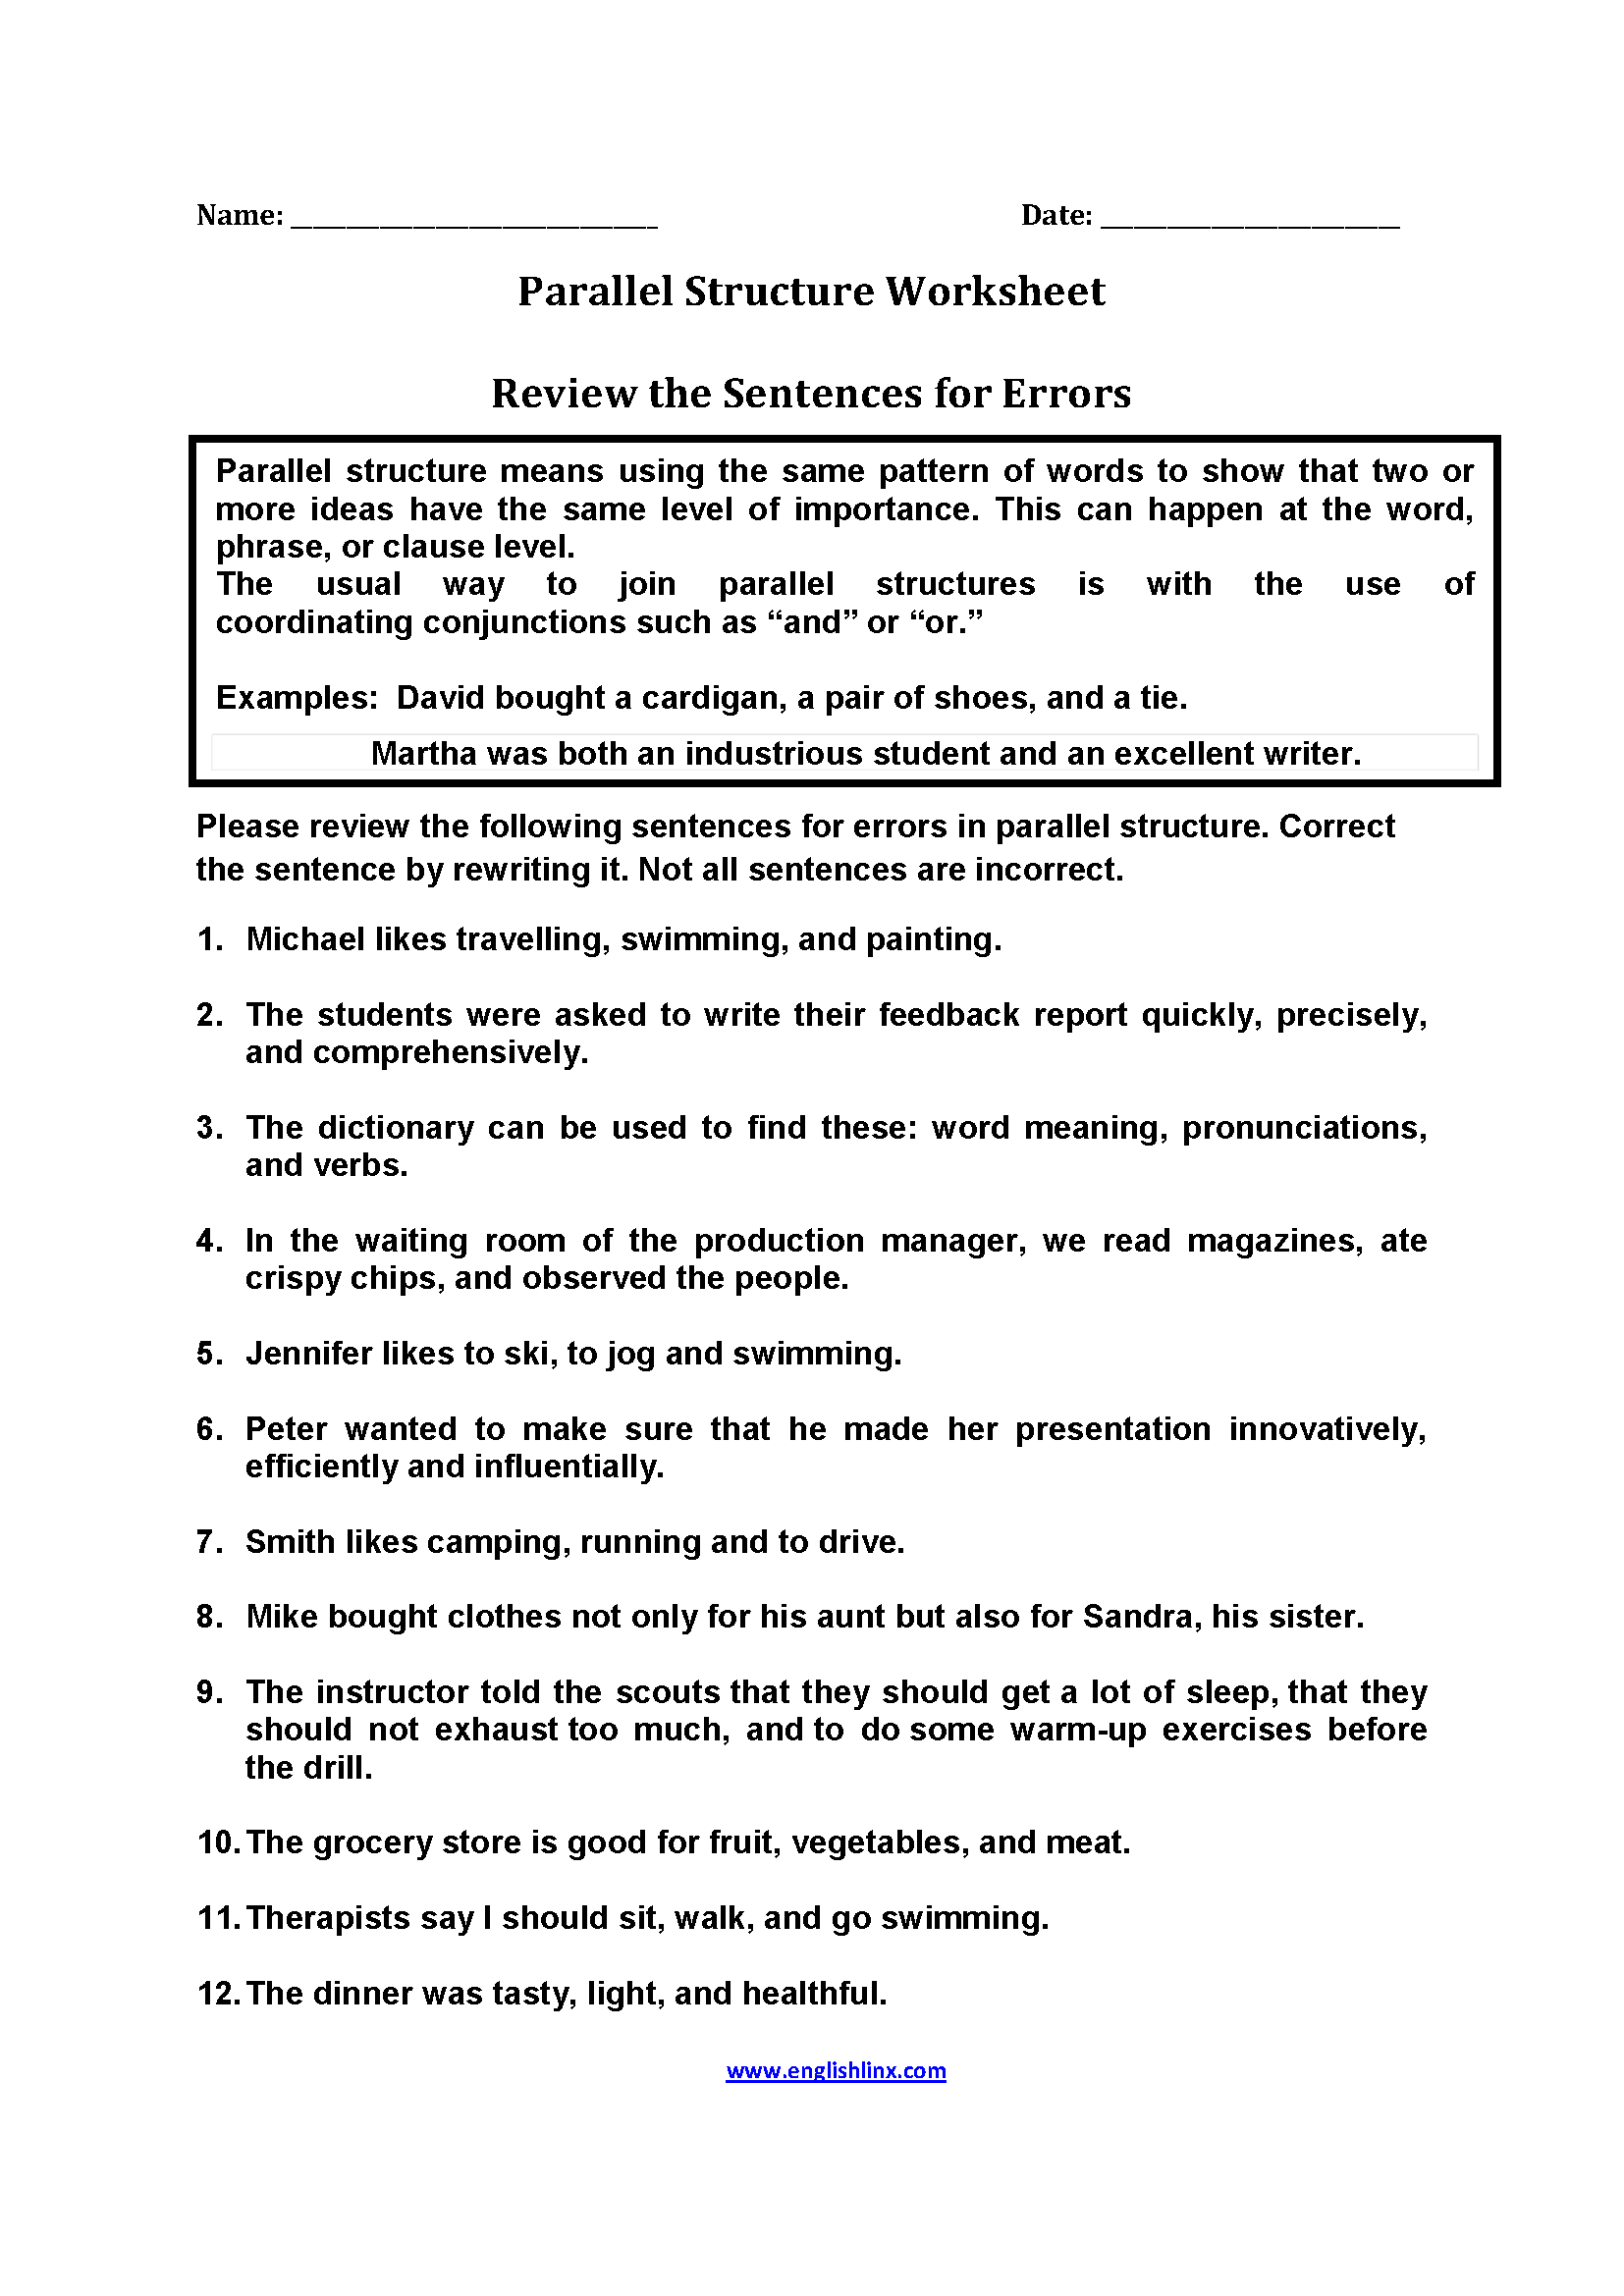 Worksheets Parallelism Worksheet review sentences for errors parallel worksheets english language this structure worksheet directs the student to correct each sentence by rewriting it must find errors